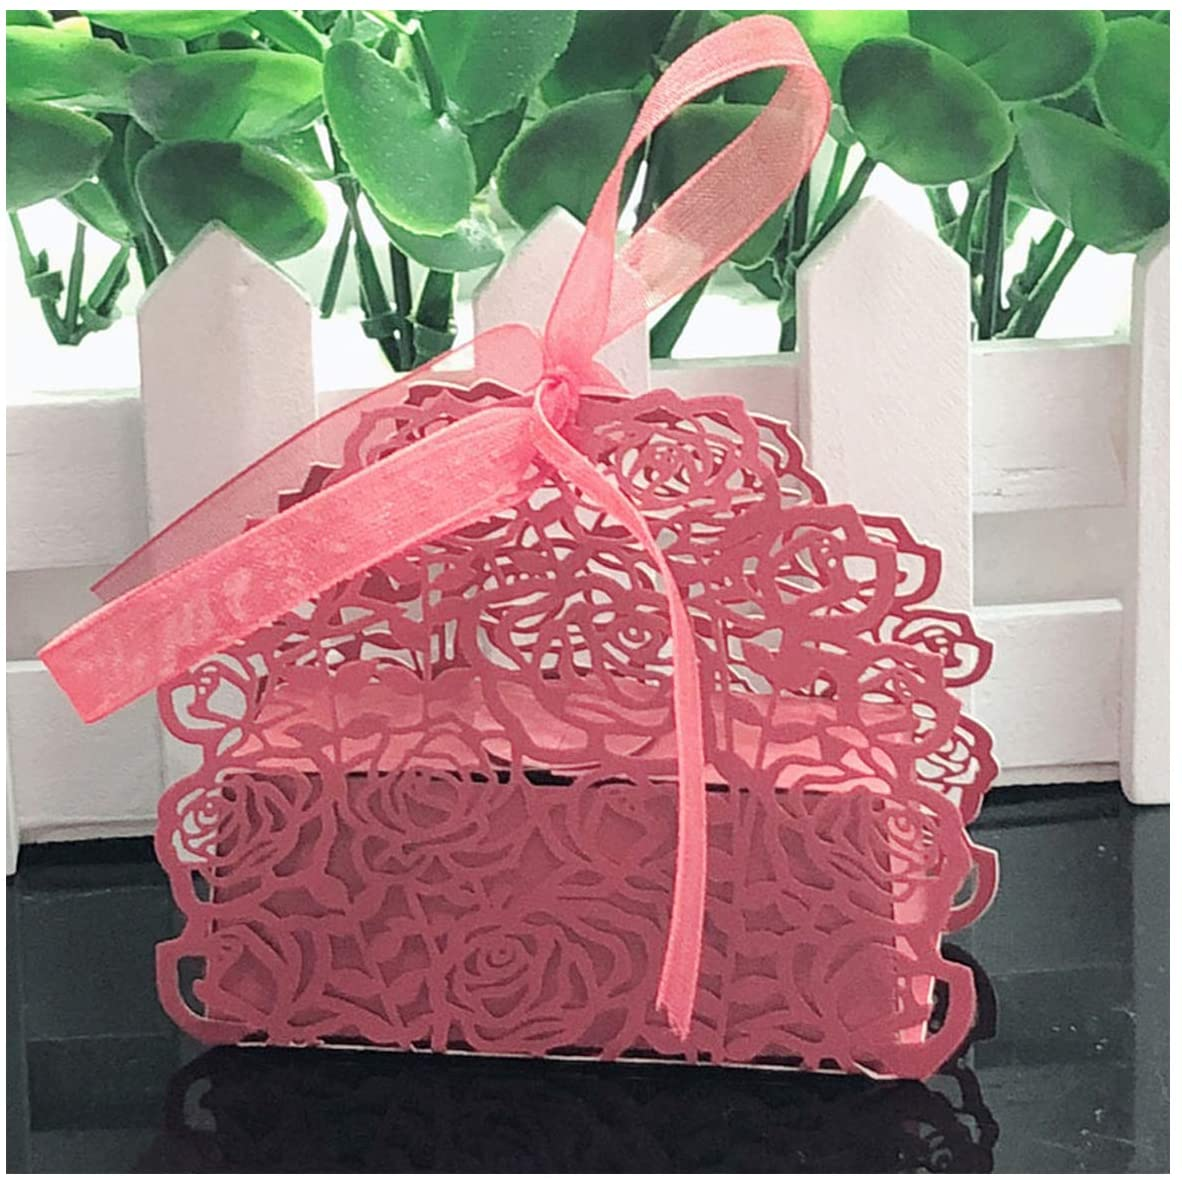 10Pcs Rose Flower Shaped Laser Cut Hollow Carriage Gift Bags Candy Boxes with Ribbon Wedding Favors Party Supplies,Red,7.5X4.5X6.5Cm